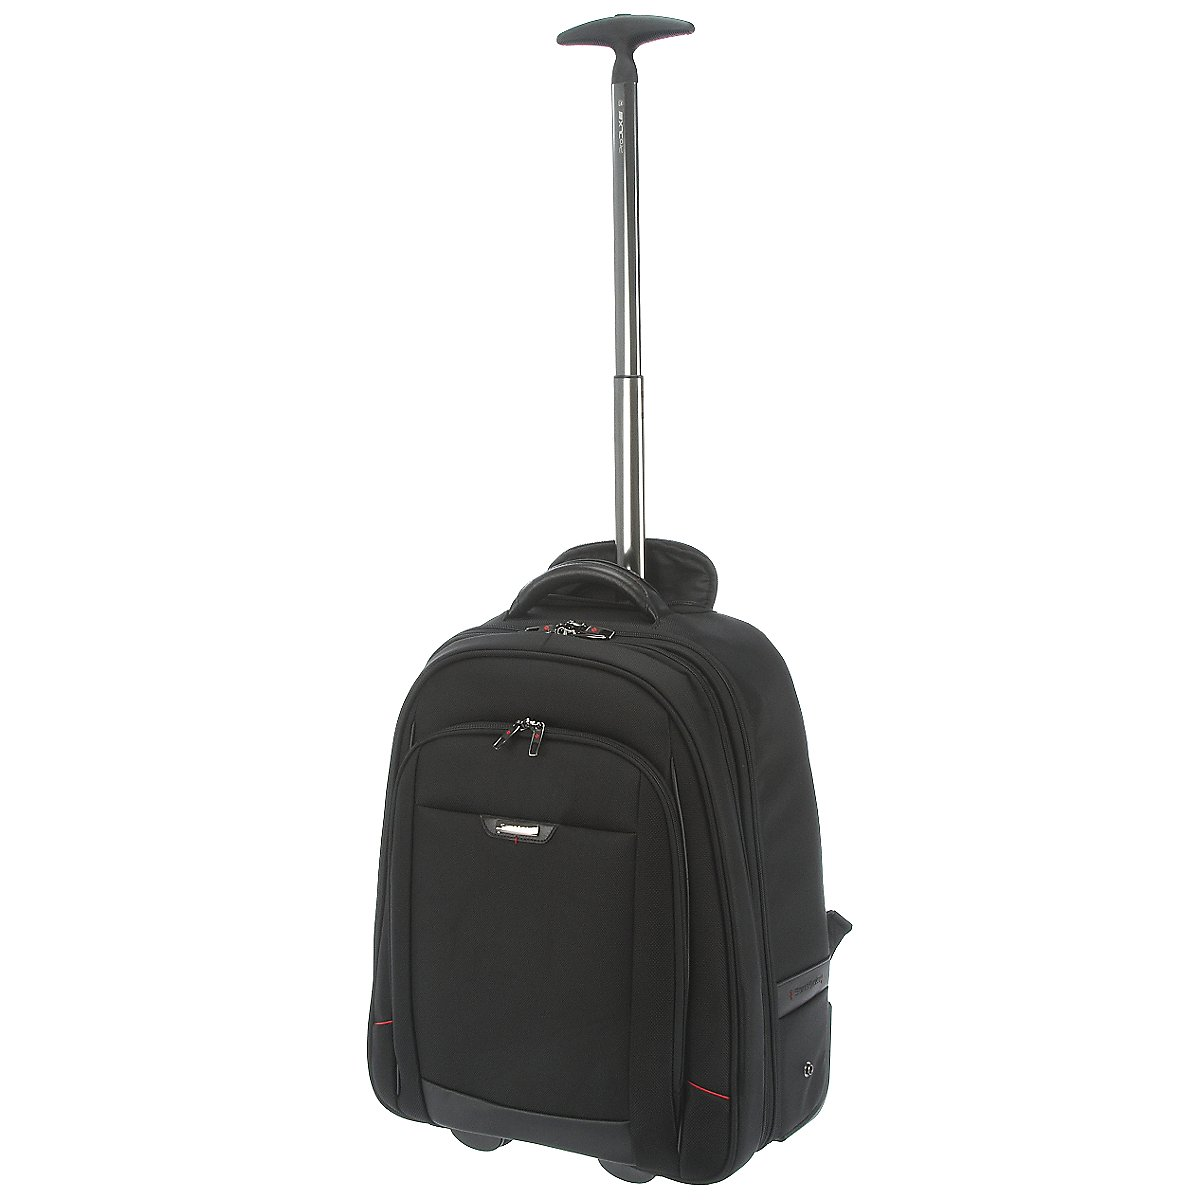 samsonite pro dlx 4 laptop rucksack mit rollen 54 cm koffer. Black Bedroom Furniture Sets. Home Design Ideas